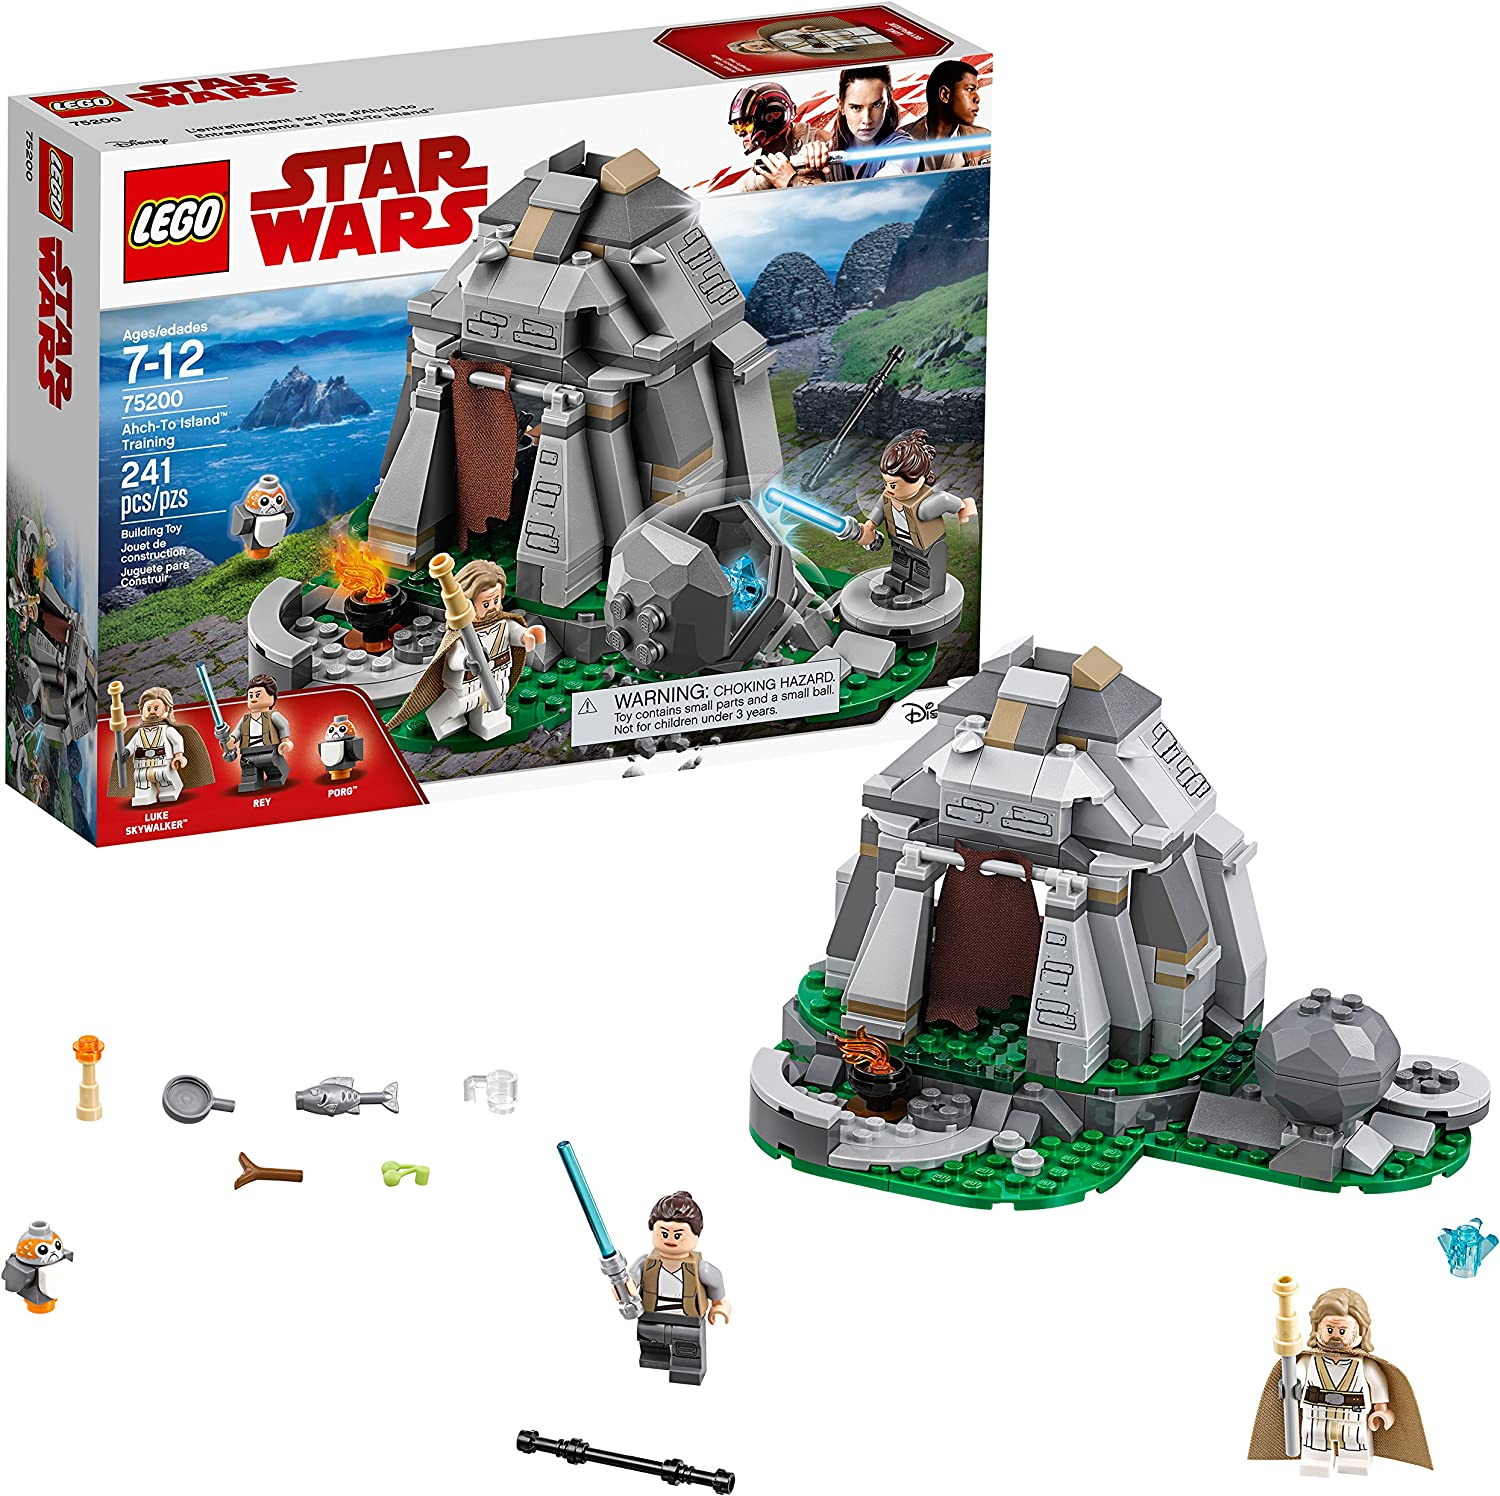 Amazon Com Lego Star Wars The Last Jedi Ahch To Island Training 75200 Building Kit 241 Pieces Discontinued By Manufacturer Toys Games